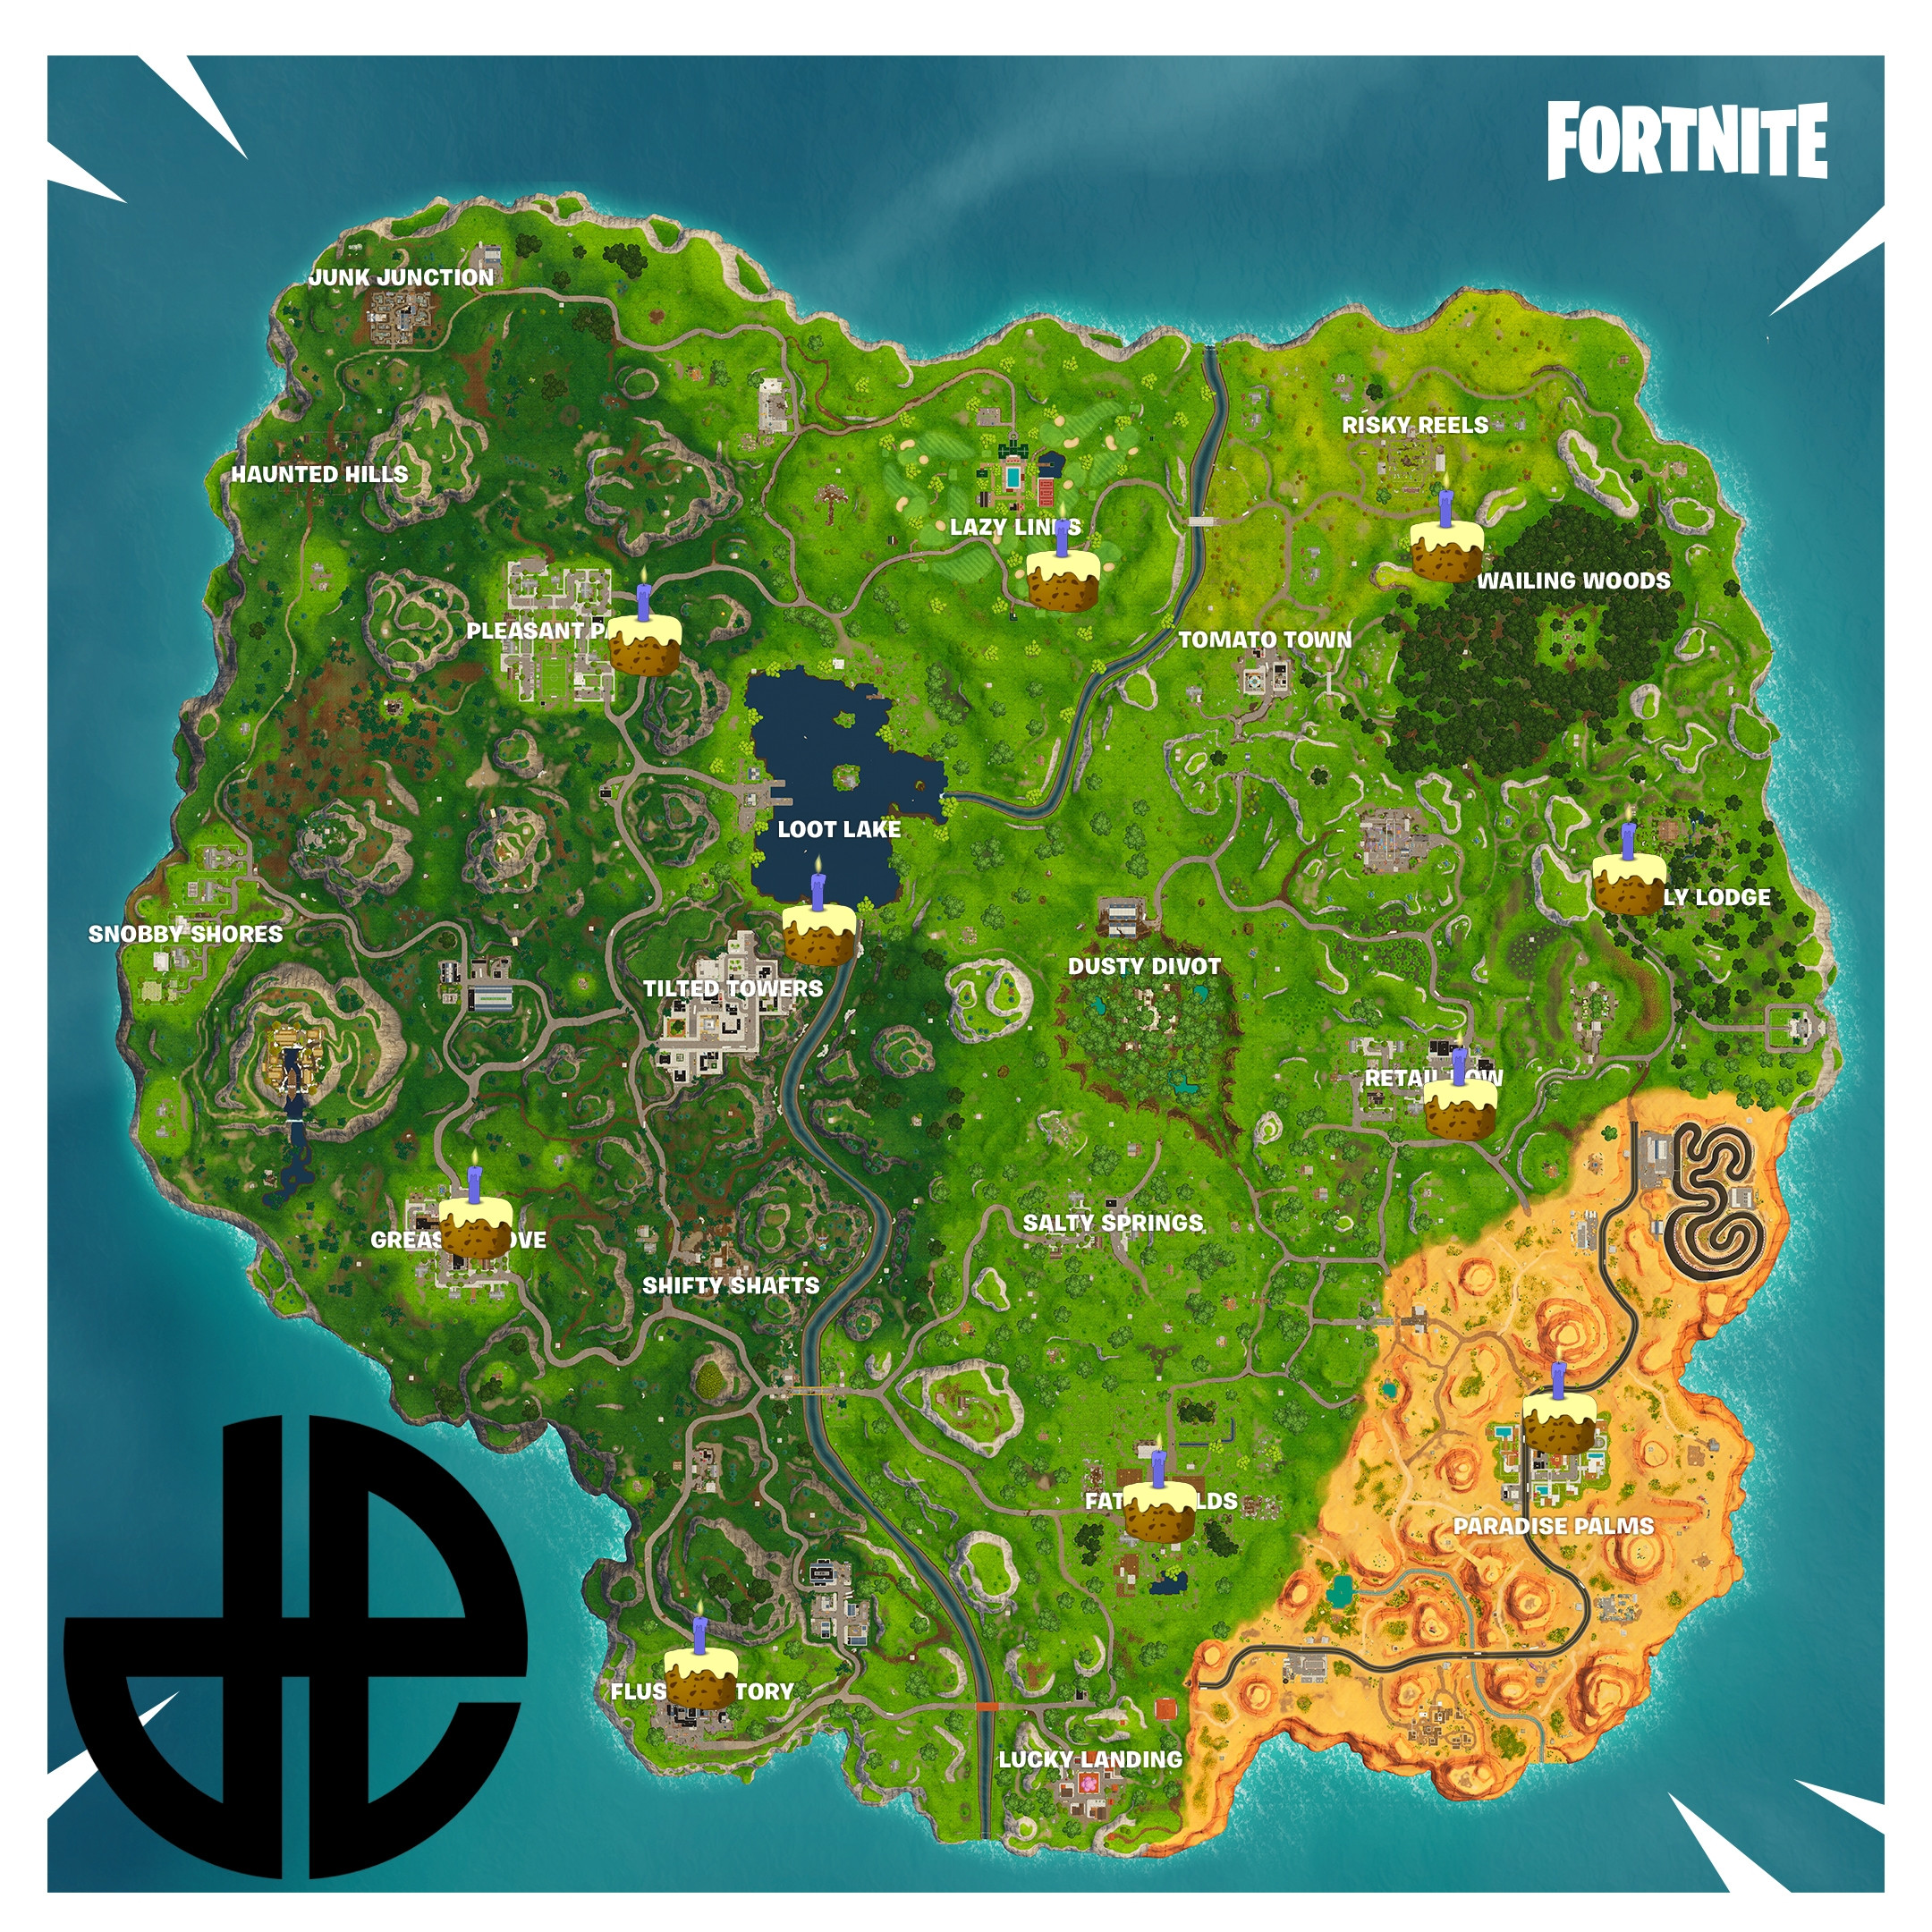 All Birthday Cake Locations  All Known Birthday Cake Locations for the Fortnite Battle